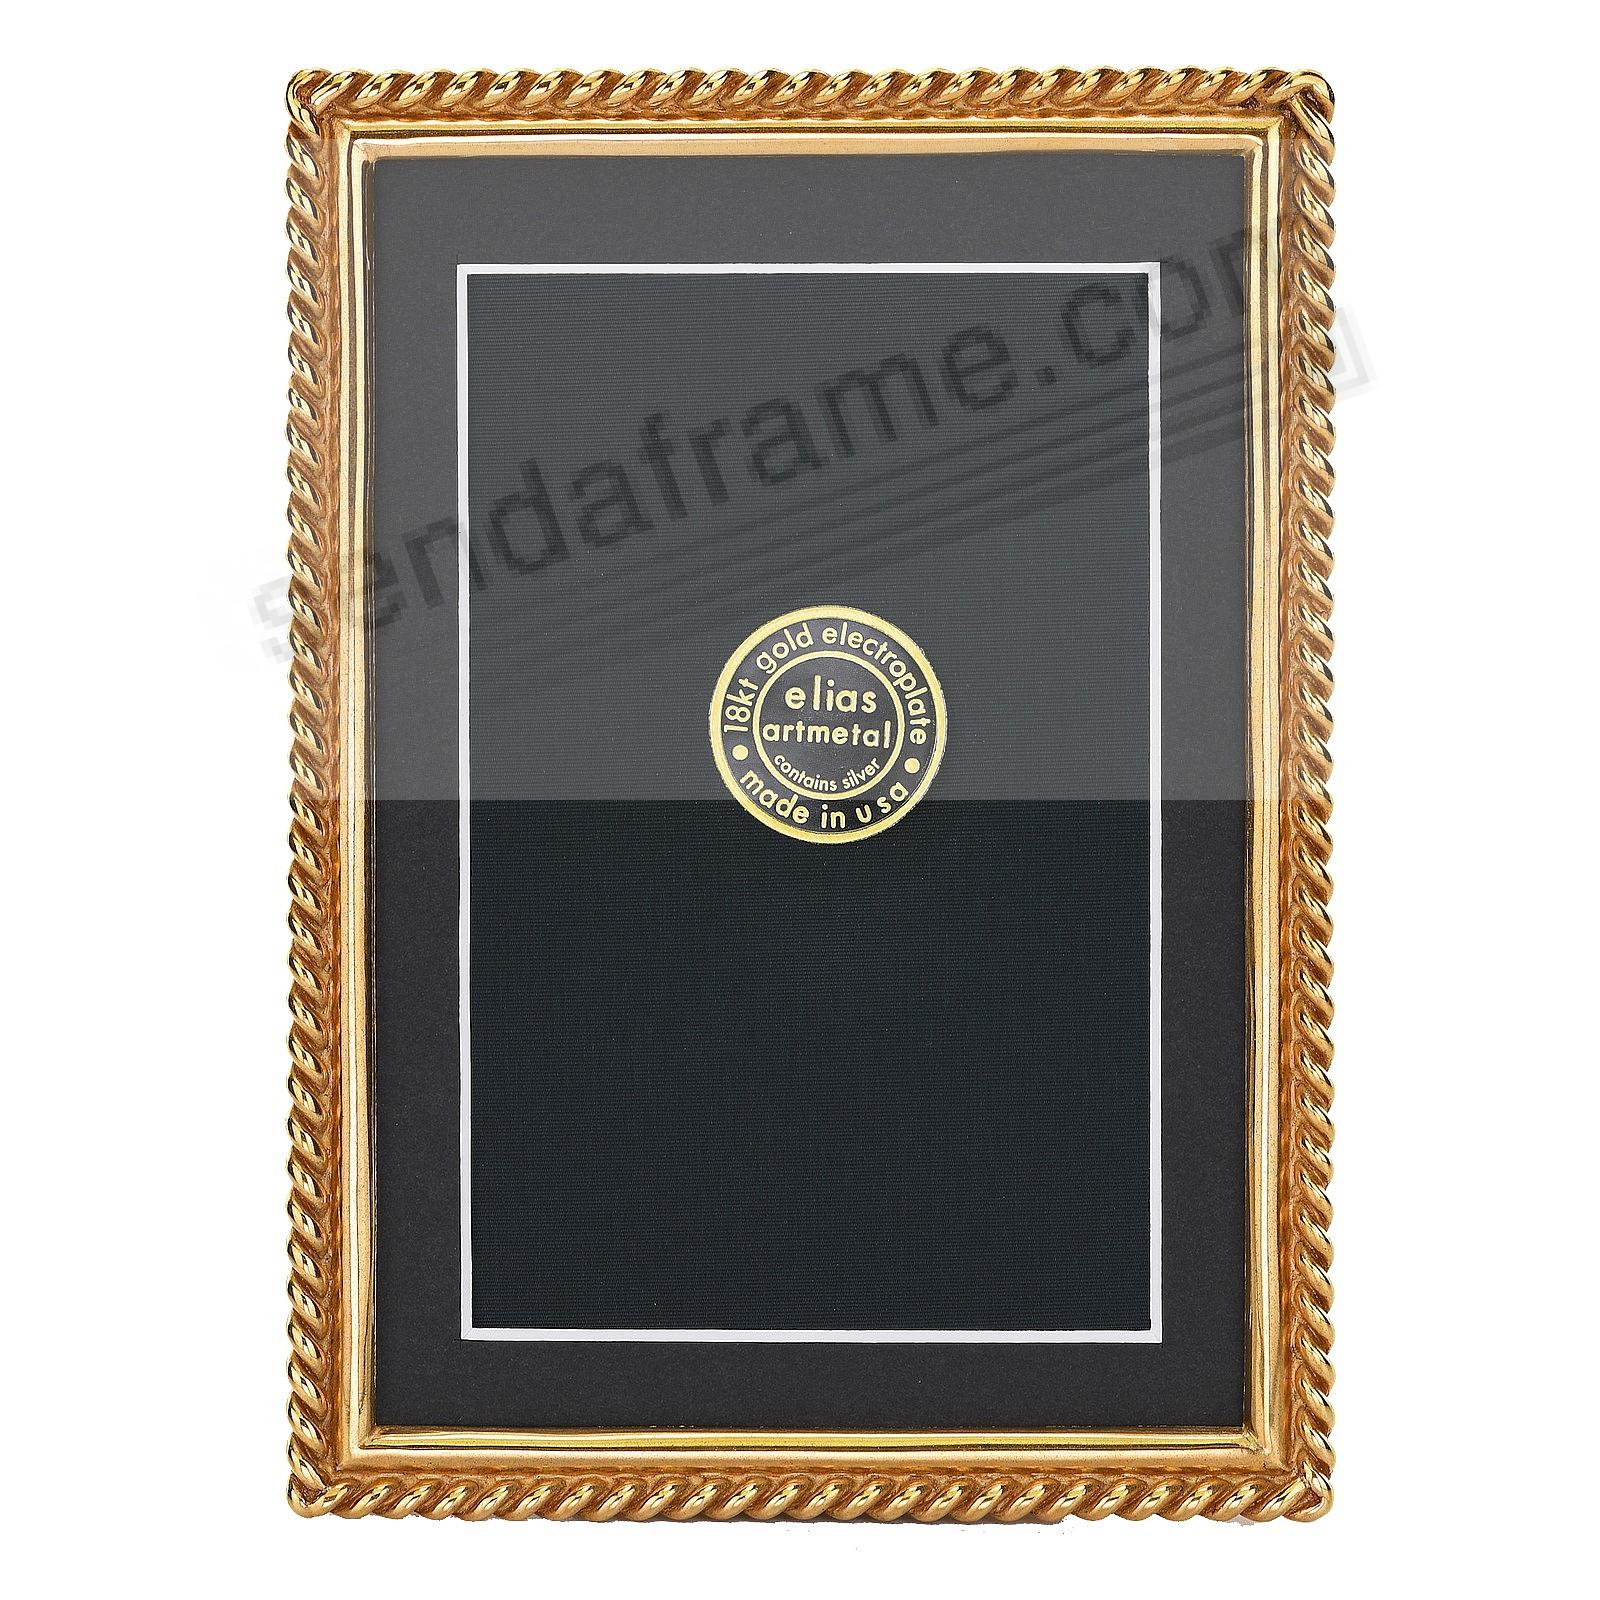 CHAIN 18kt Museum Gold over Pewter frame 5x7/4x6 by Elias Artmetal®